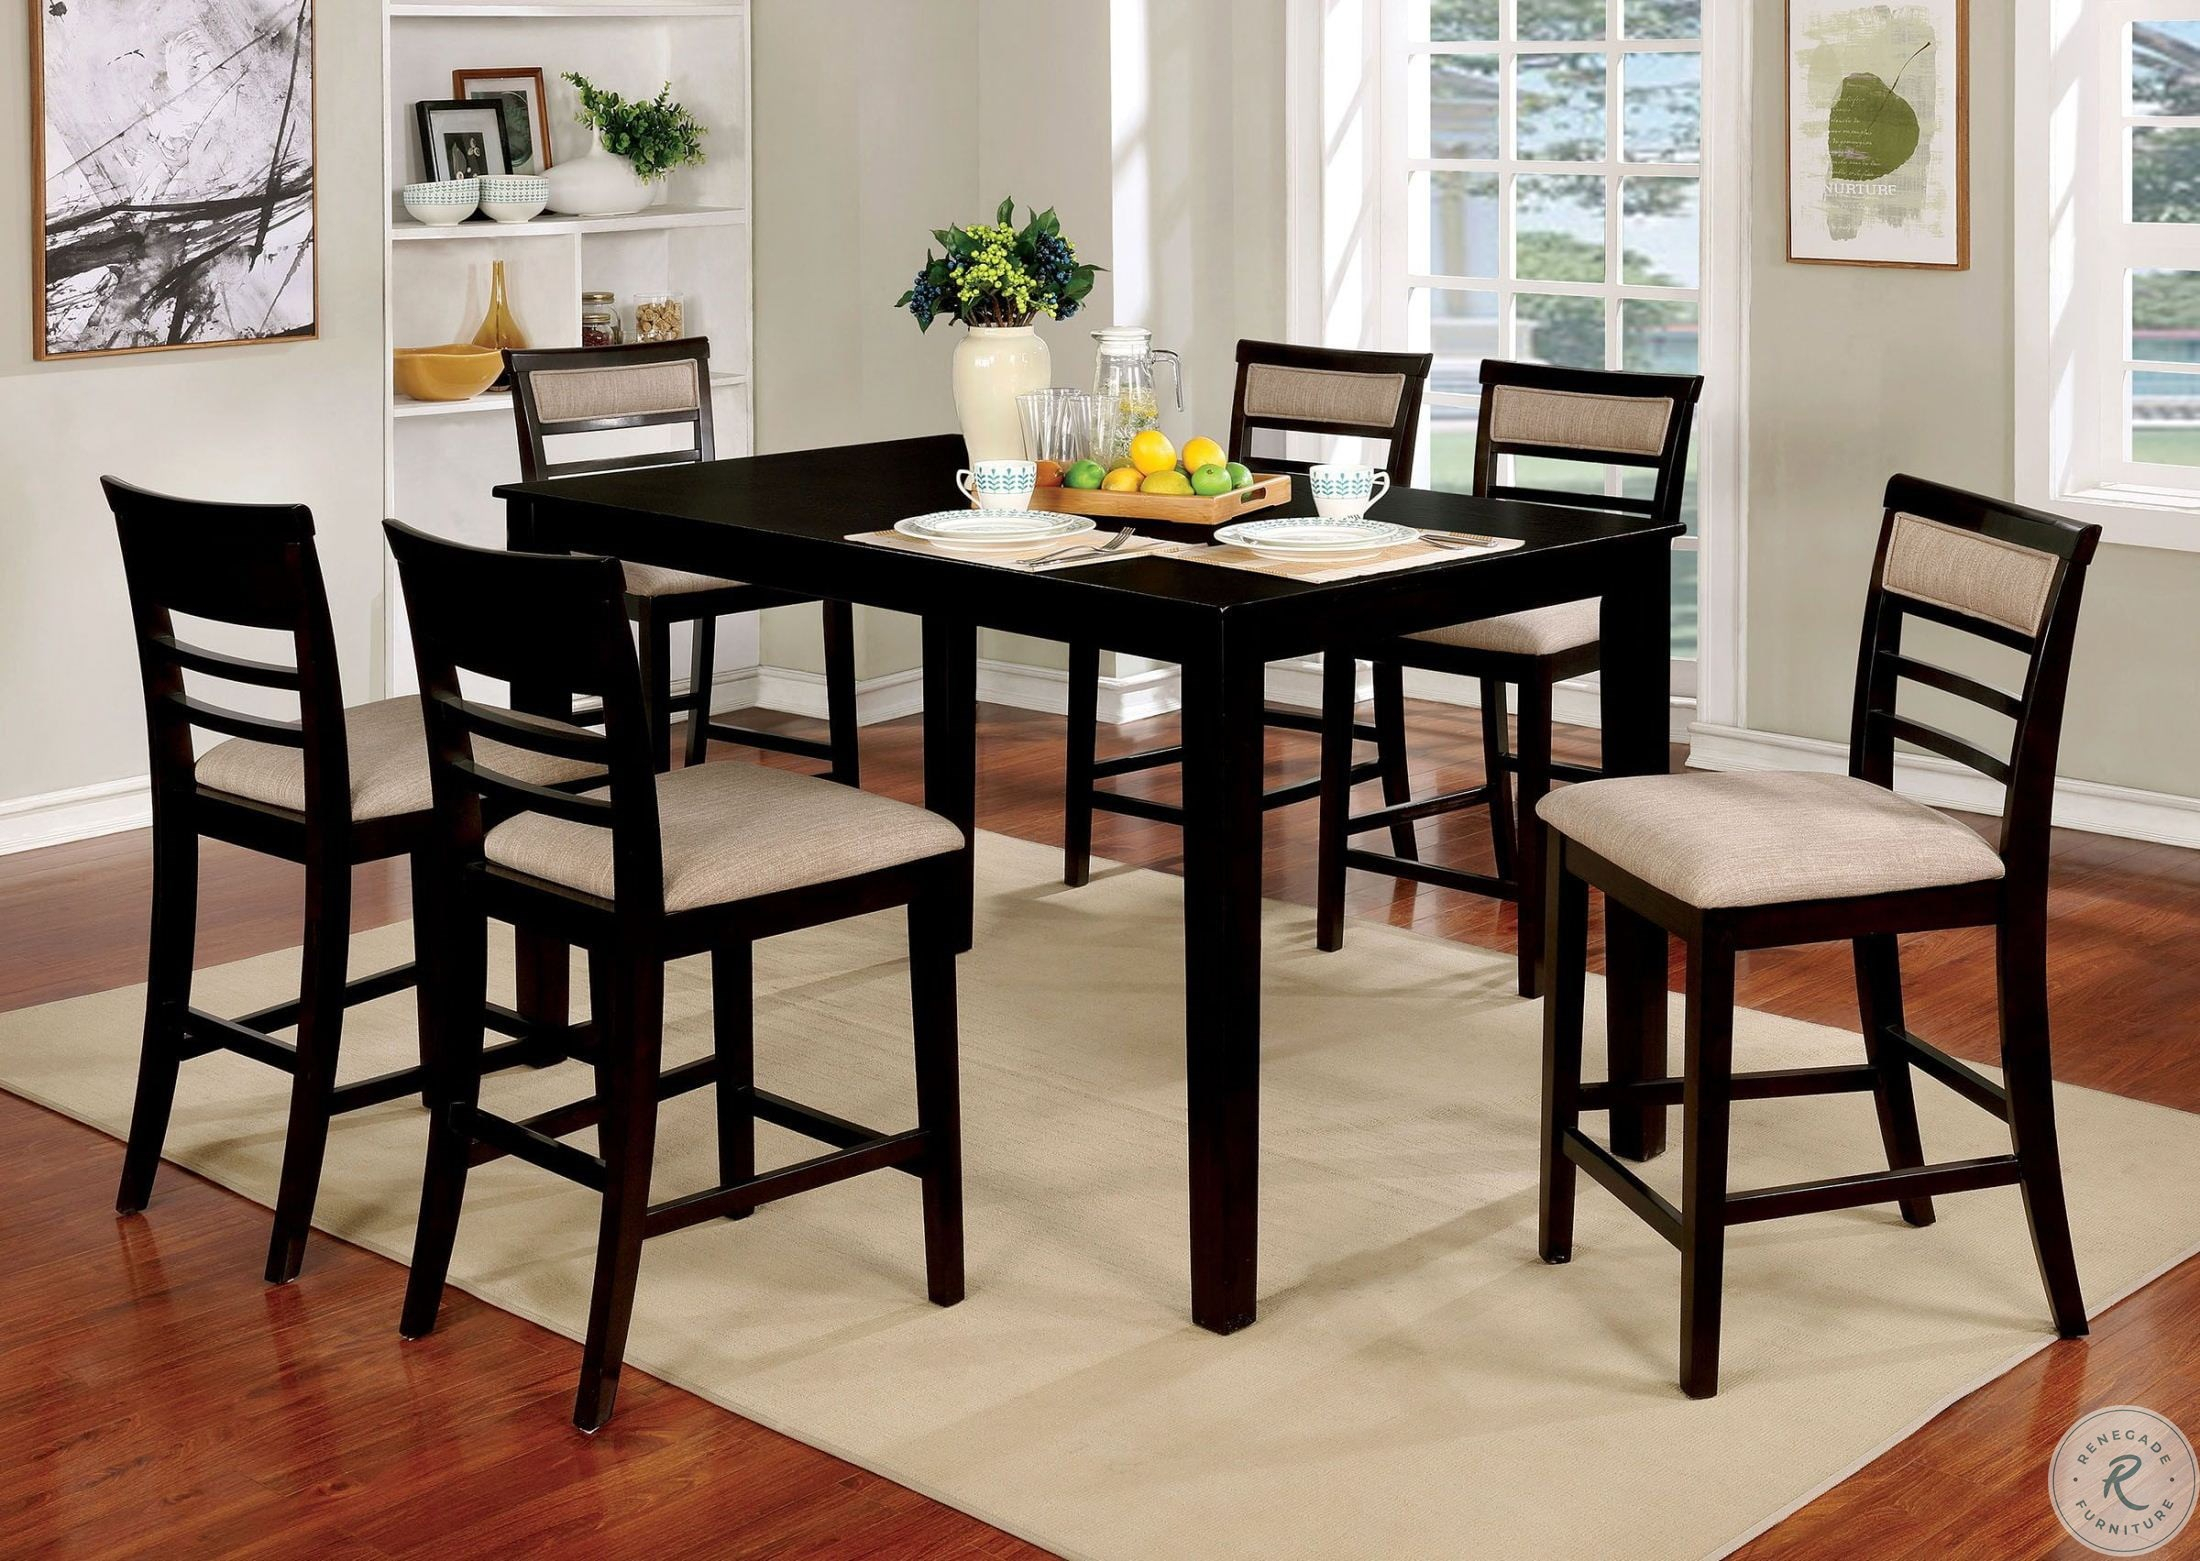 Fafnir Espresso 7 Piece Counter Height Dining Room Set Pertaining To Most Popular Anette 3 Piece Counter Height Dining Sets (View 16 of 20)